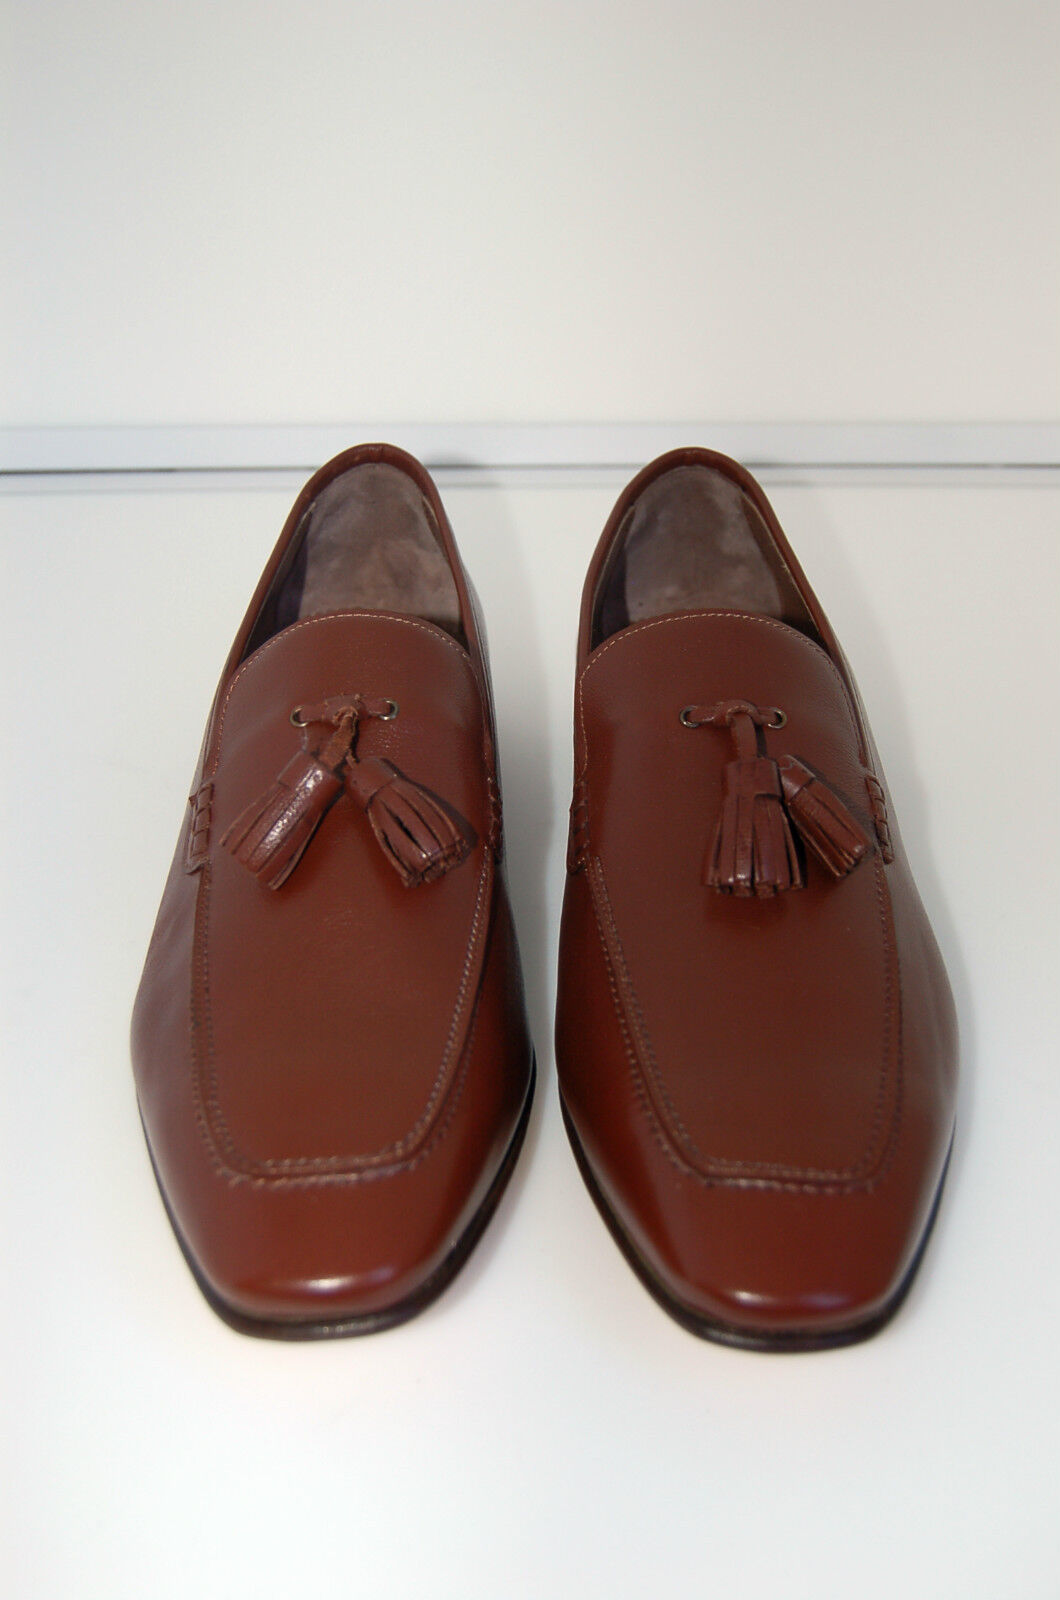 MAN - 45 - 11eu -PENNY LOAFER - BROWN CALF- VITELLO MARRONE -LTH SOLE-F.DO CUOIO